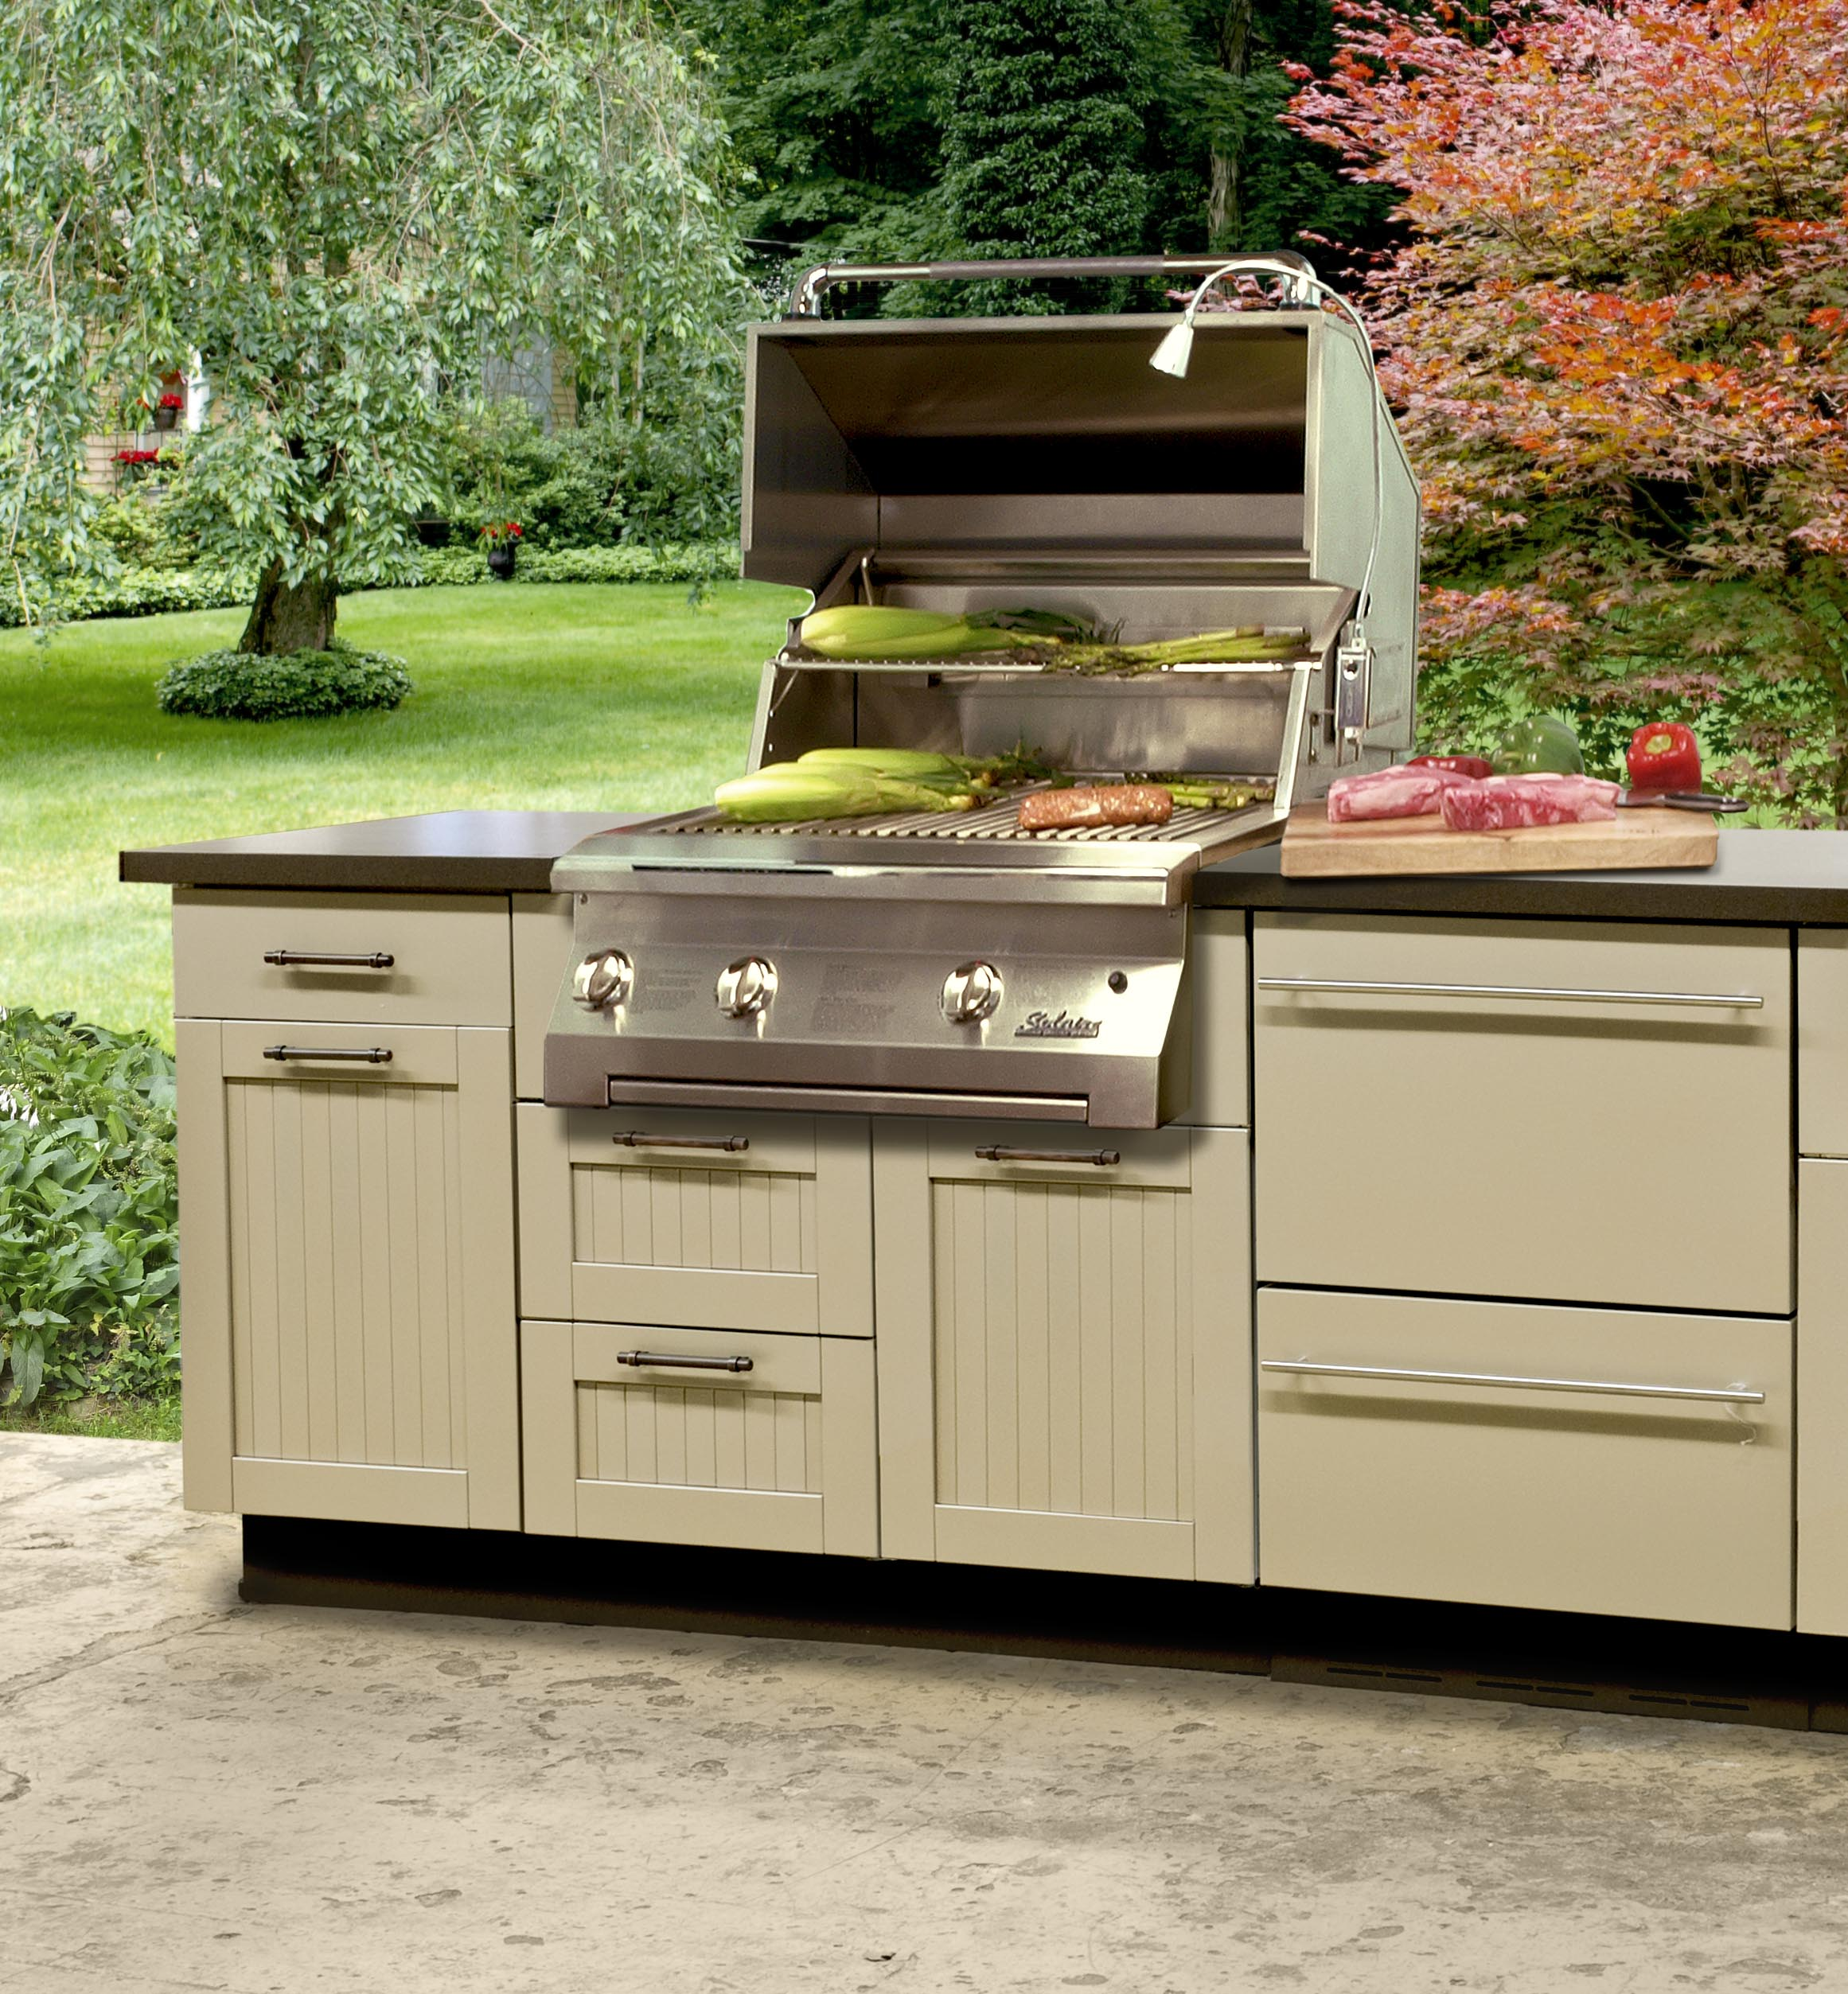 outdoor kitchen lowes best suited to offer you top notch outdoor kitchen ideas interior. Black Bedroom Furniture Sets. Home Design Ideas